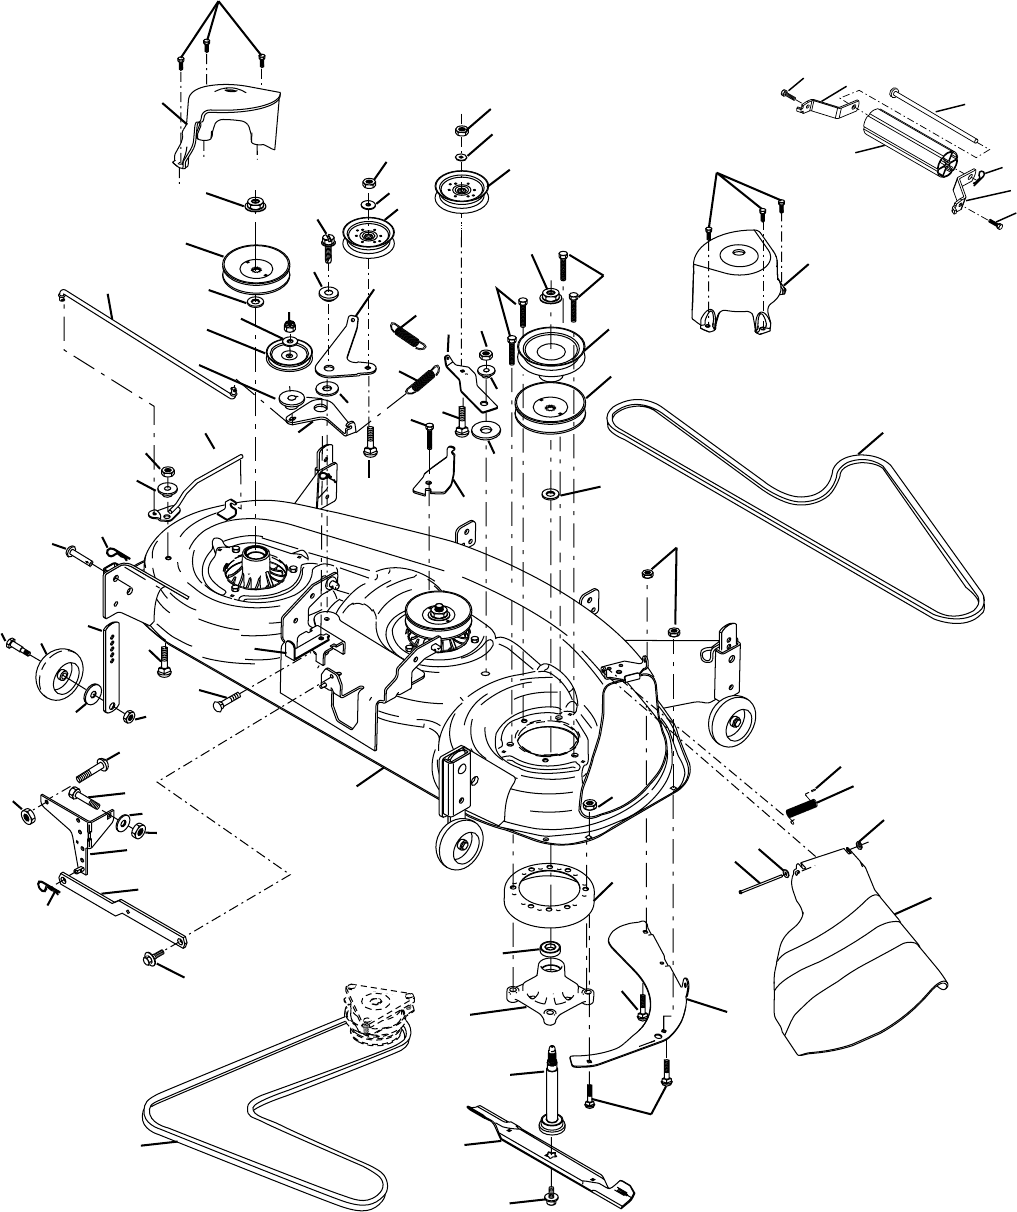 Page 44 of Poulan Lawn Mower 02153 User Guide